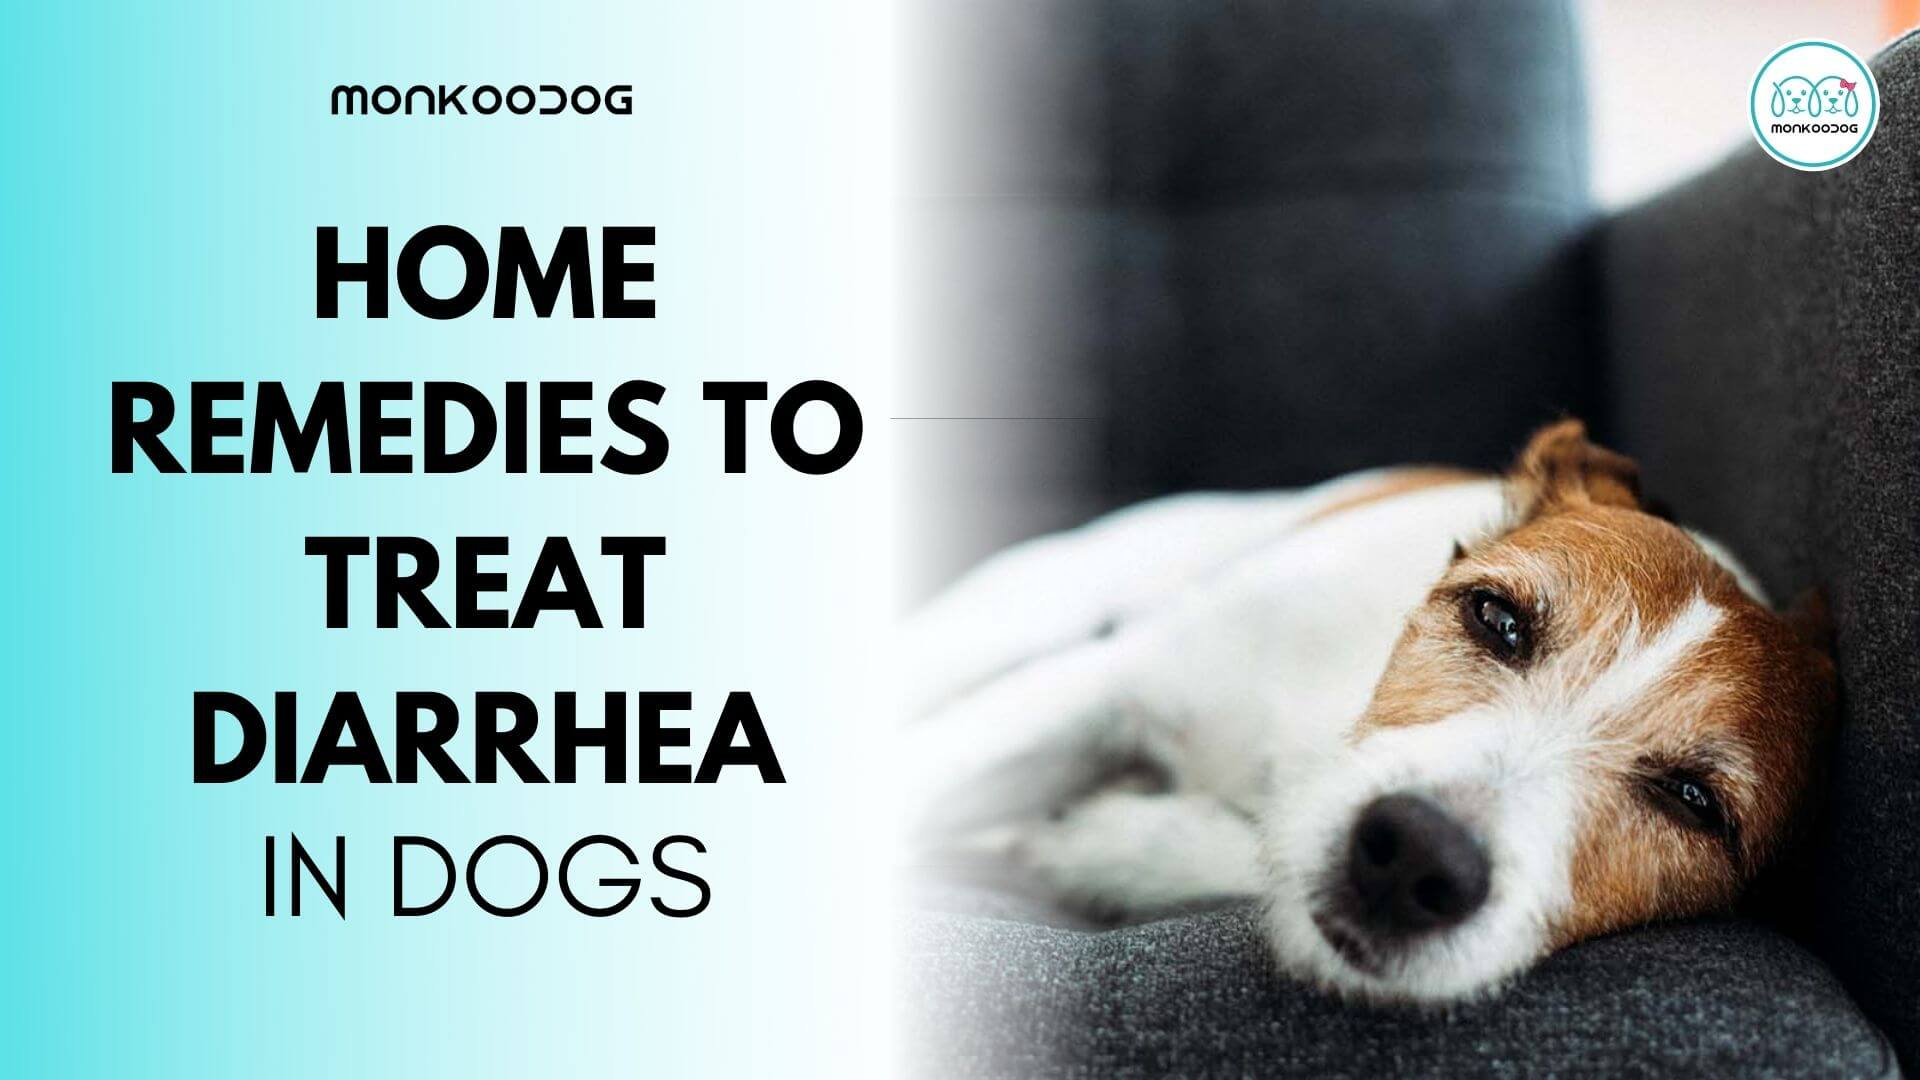 How To Treat Diarrhea In Dogs With Home Remedies